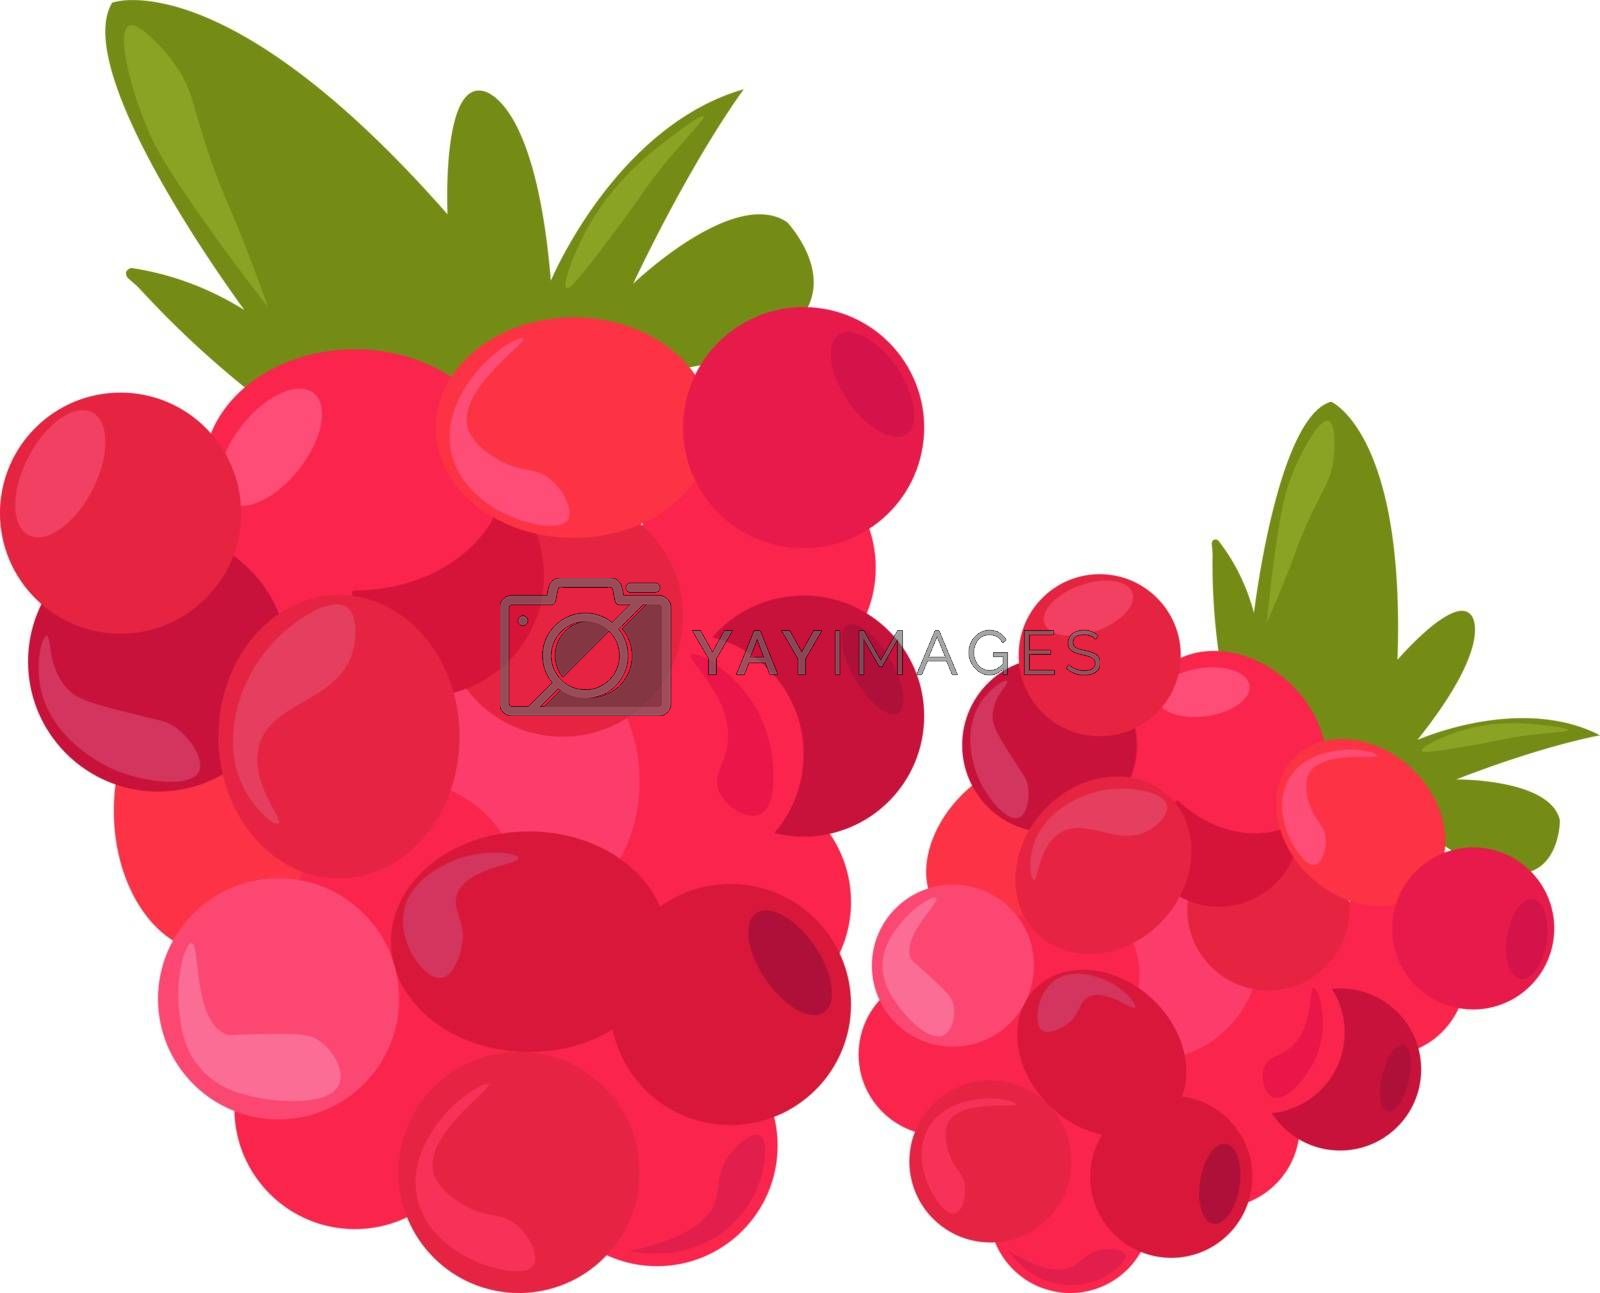 Raspberry, illustration, vector on white background.